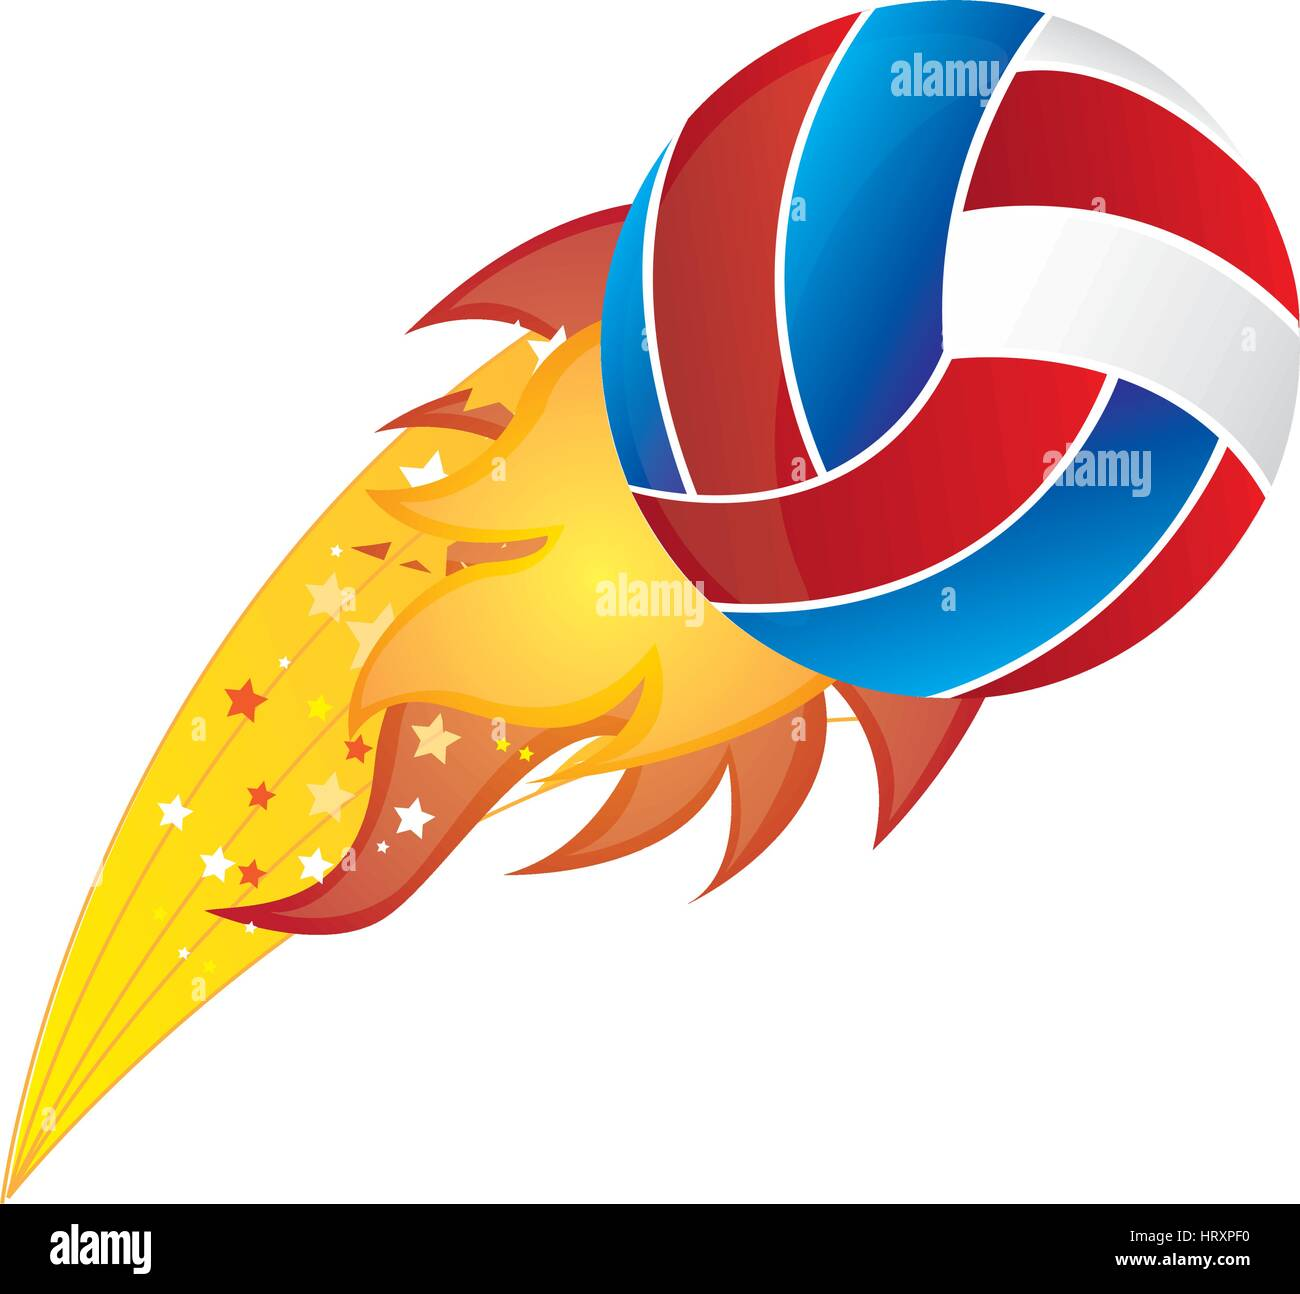 colorful olympic flame with volleyball ball vector illustration - Stock Vector